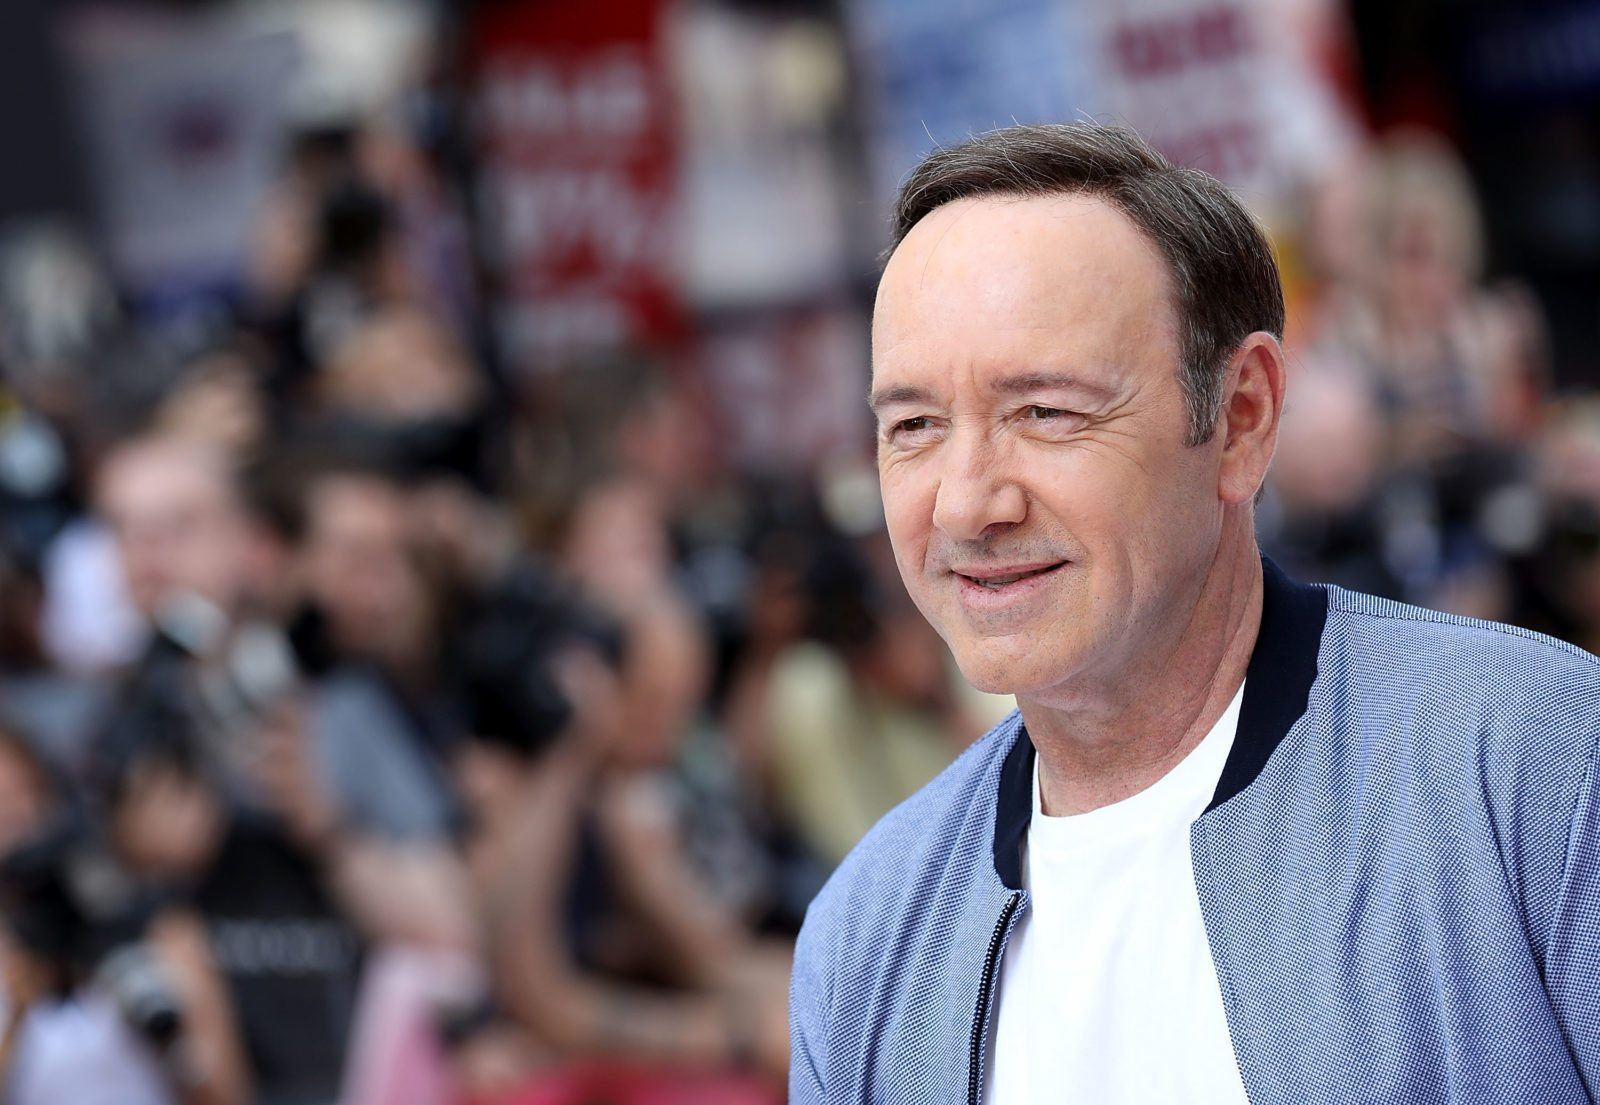 """LONDON, ENGLAND - JUNE 21: Kevin Spacey attends the European Premiere of Sony Pictures """"Baby Driver"""" on June 21, 2017 in London, England. (Photo by Tim P. Whitby/Getty Images for Sony Pictures )"""